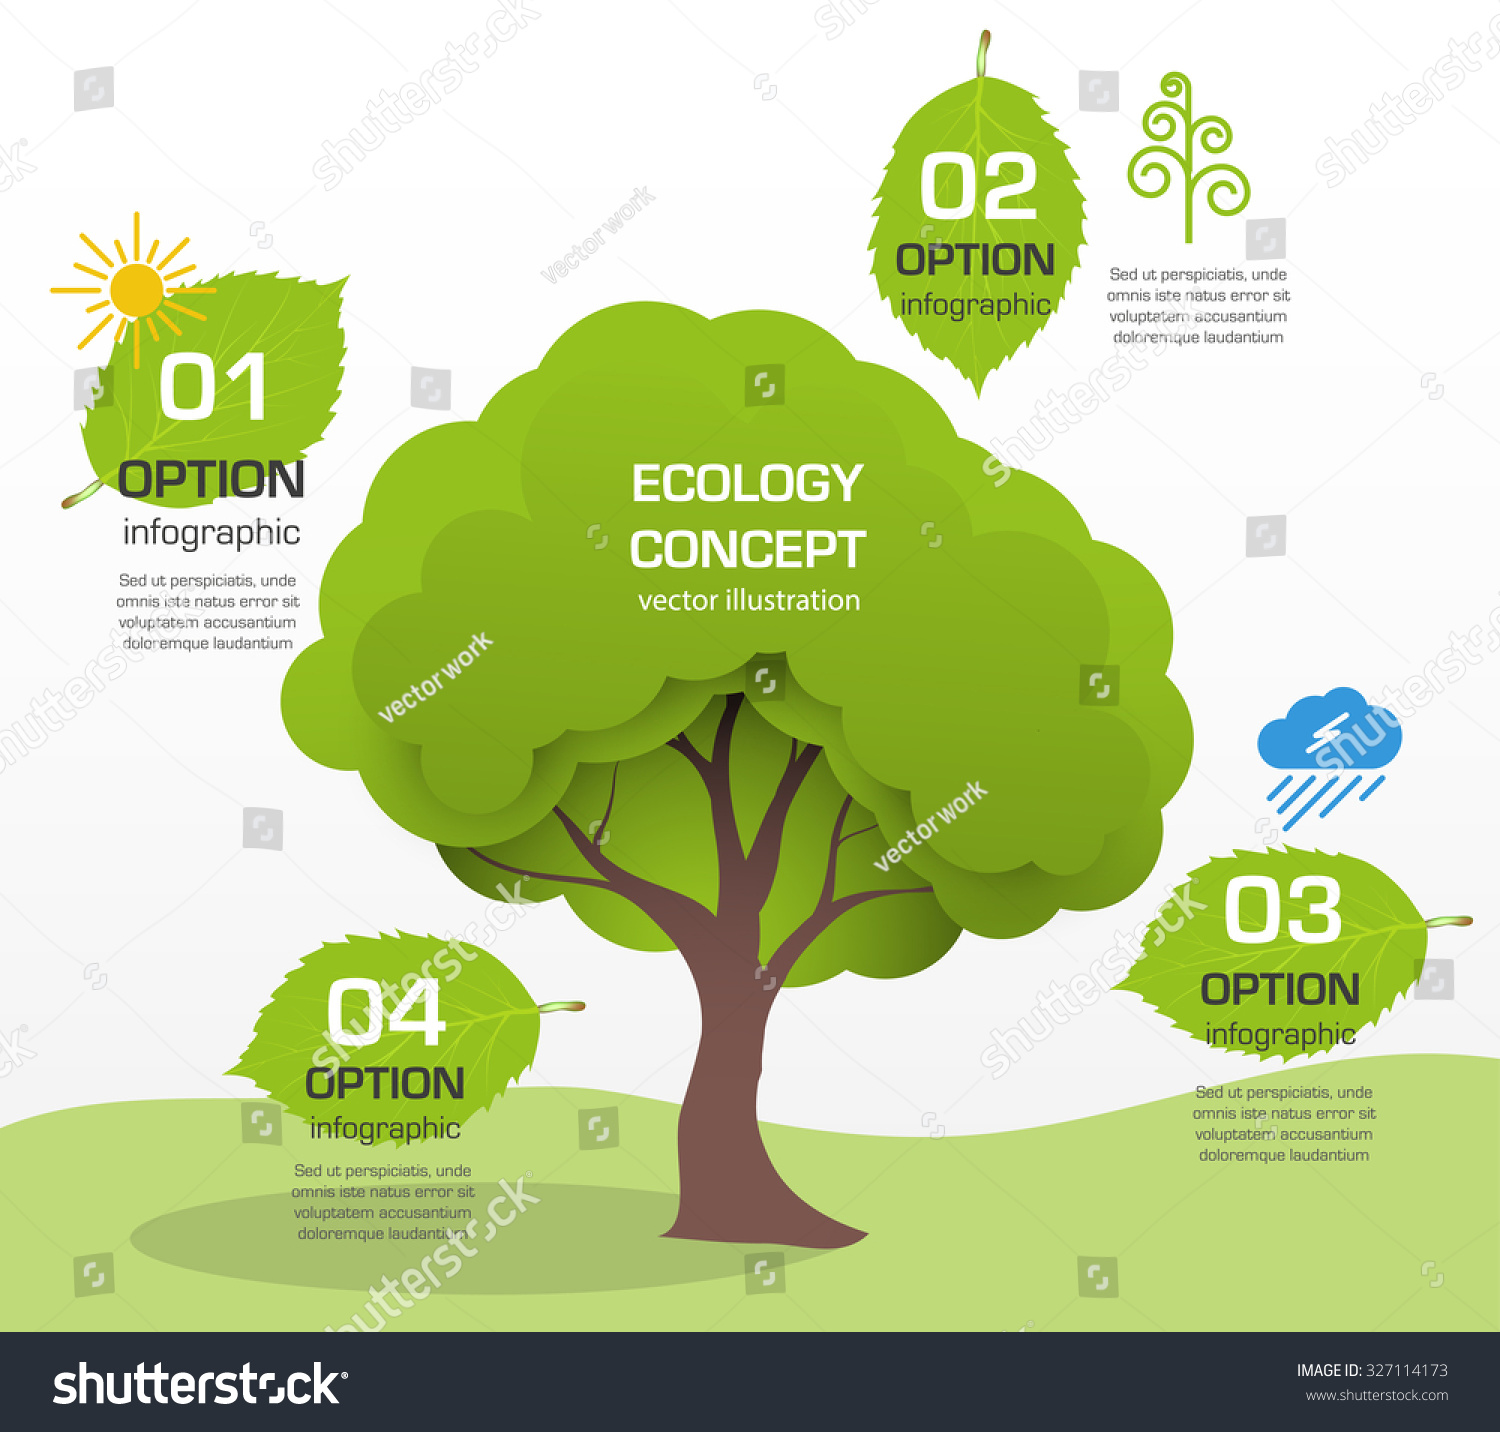 essay on preservation of environment Free environmental preservation papers, essays, and research papers.